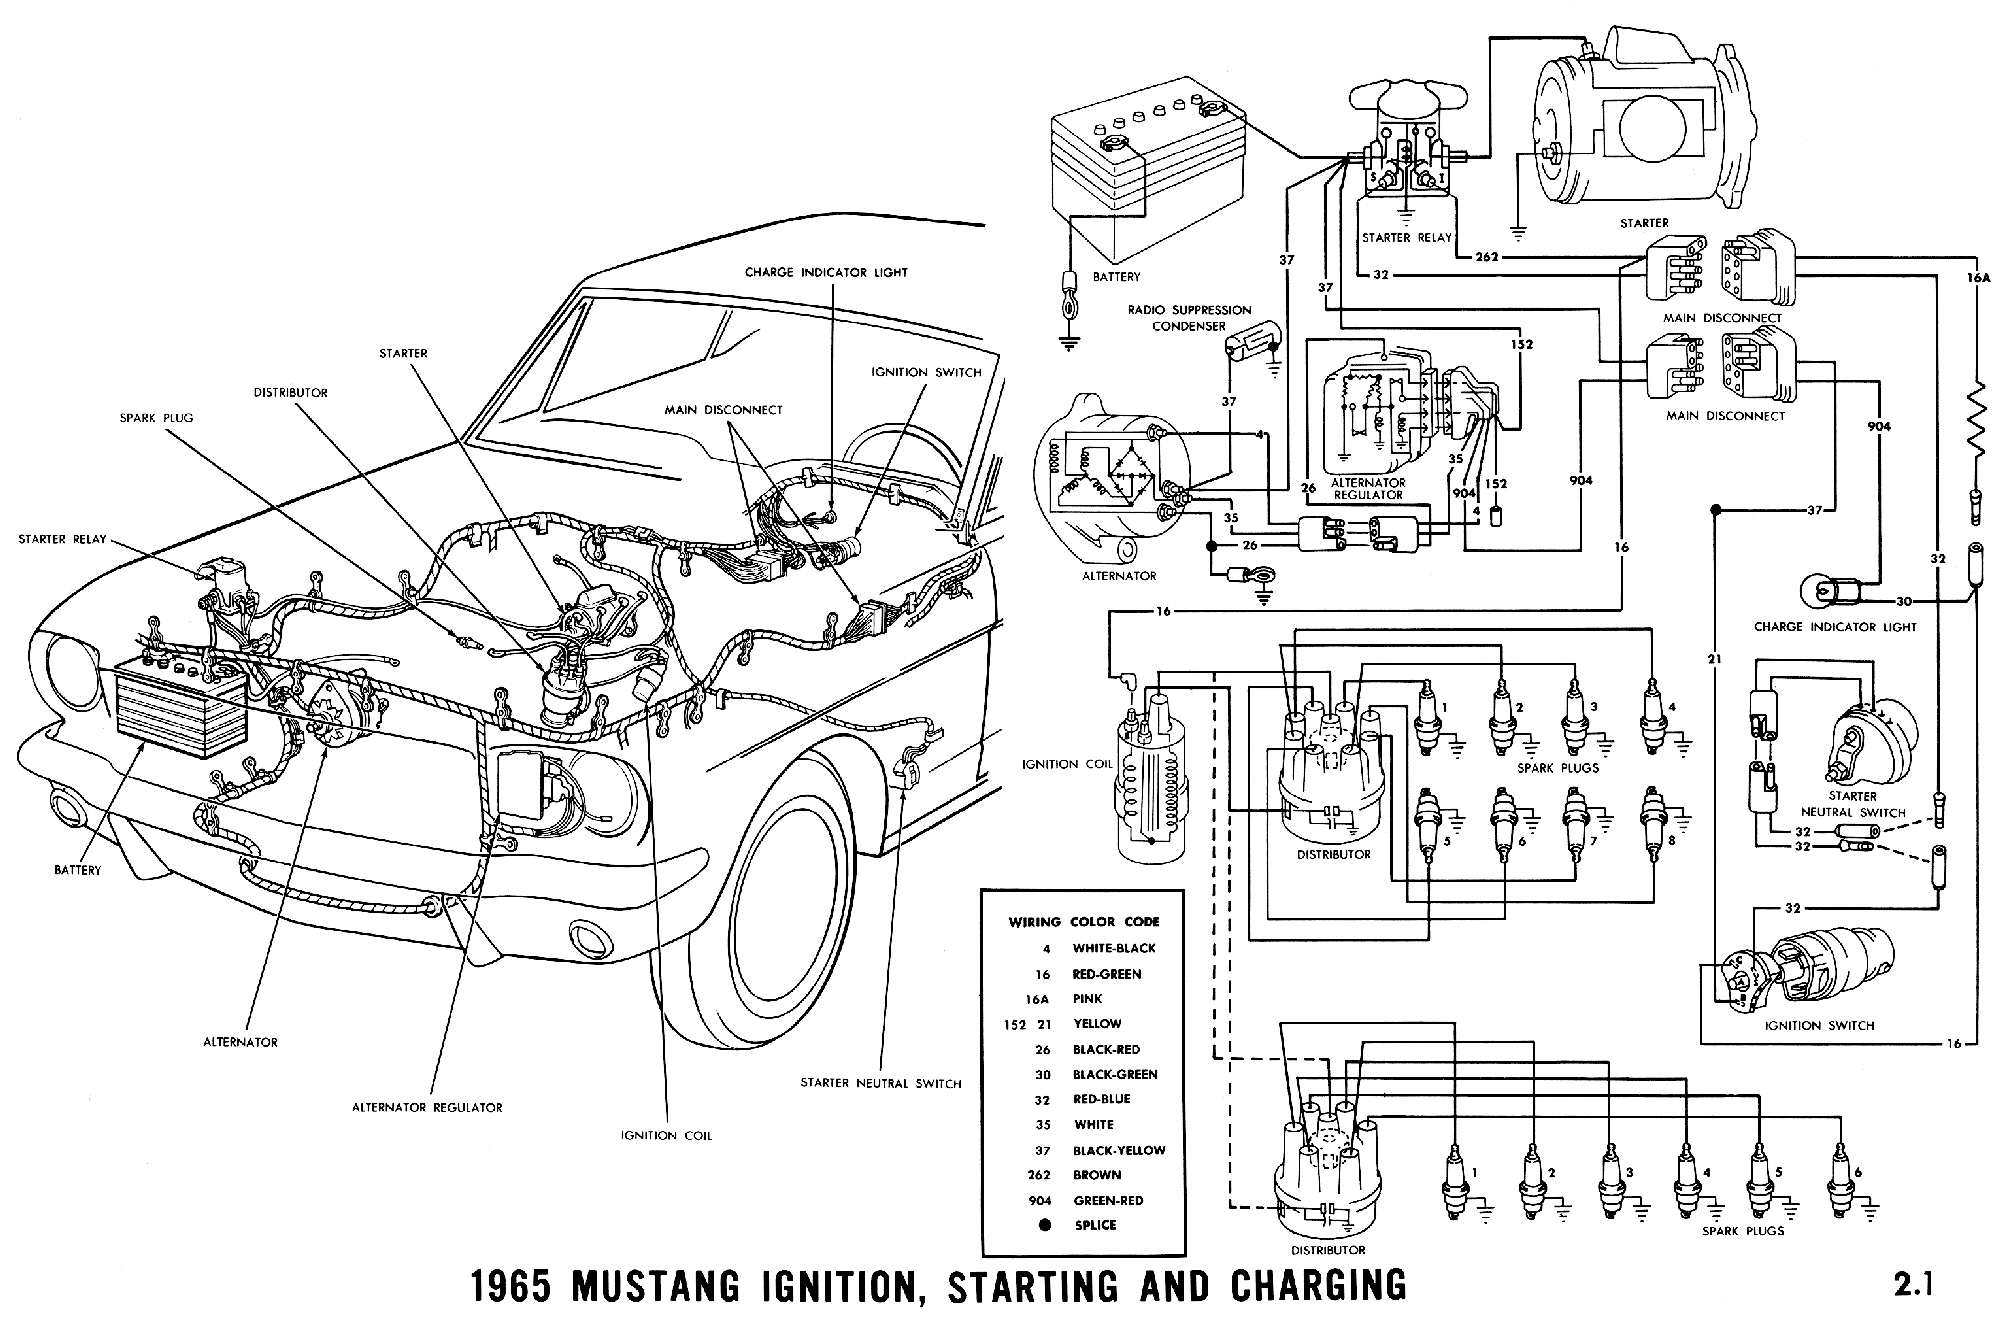 hight resolution of 1965 mustang ignition starting and charging pictorial and schematic